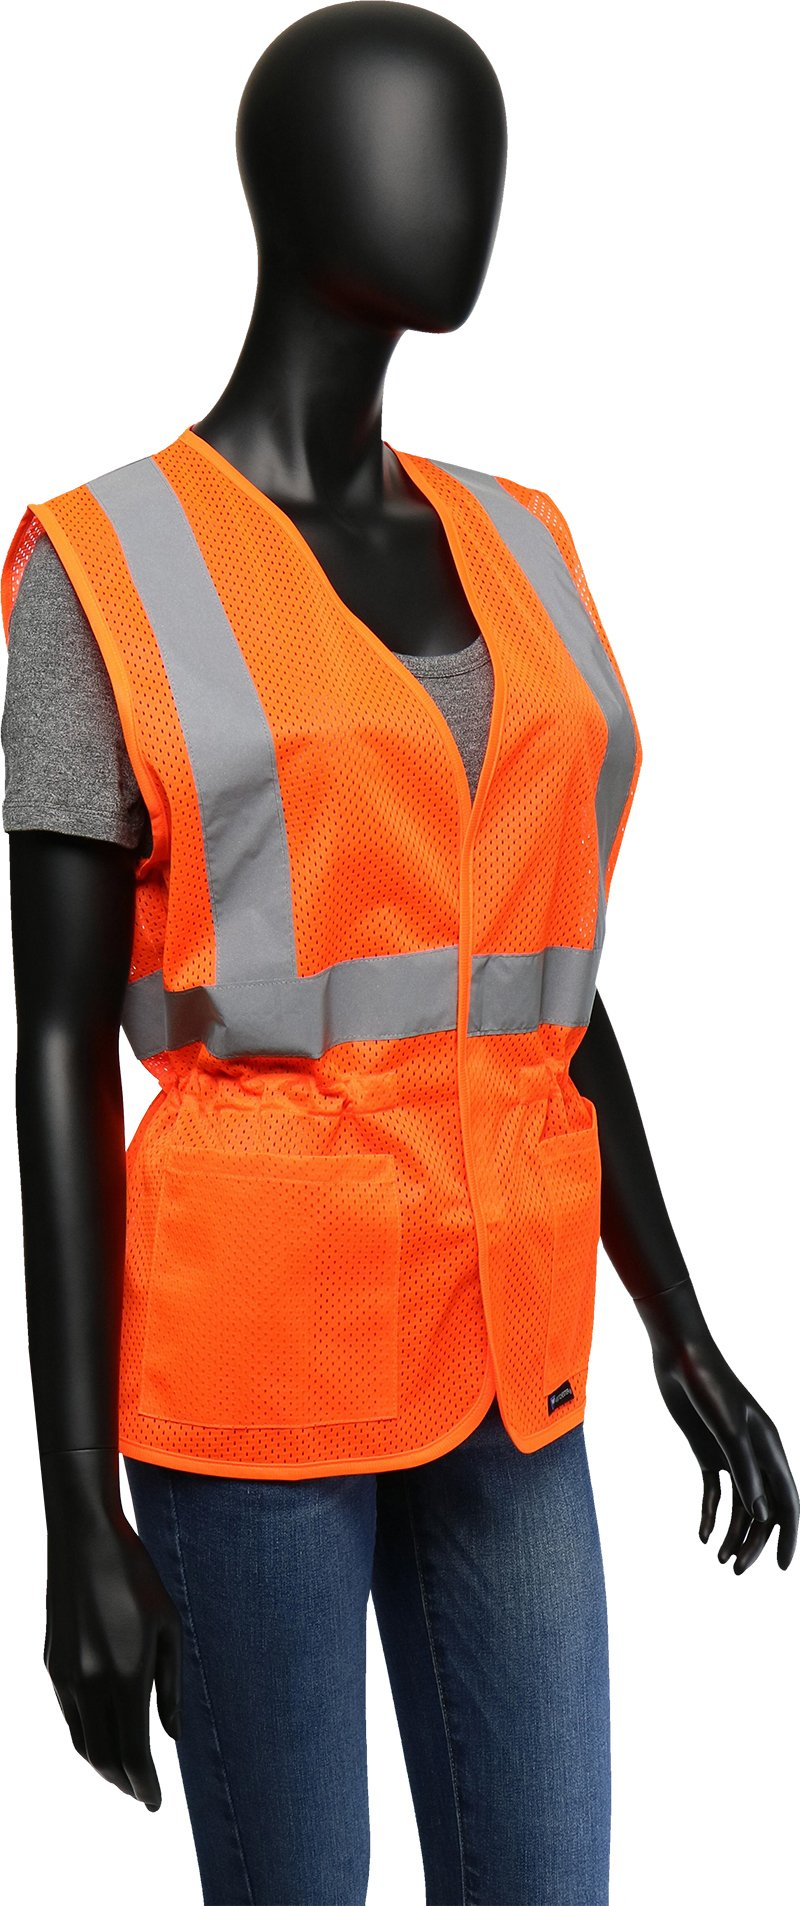 West Chester 47208 Class 2 High Visibility Ladies Fitted Mesh Vest: Orange, Small/Medium by West Chester